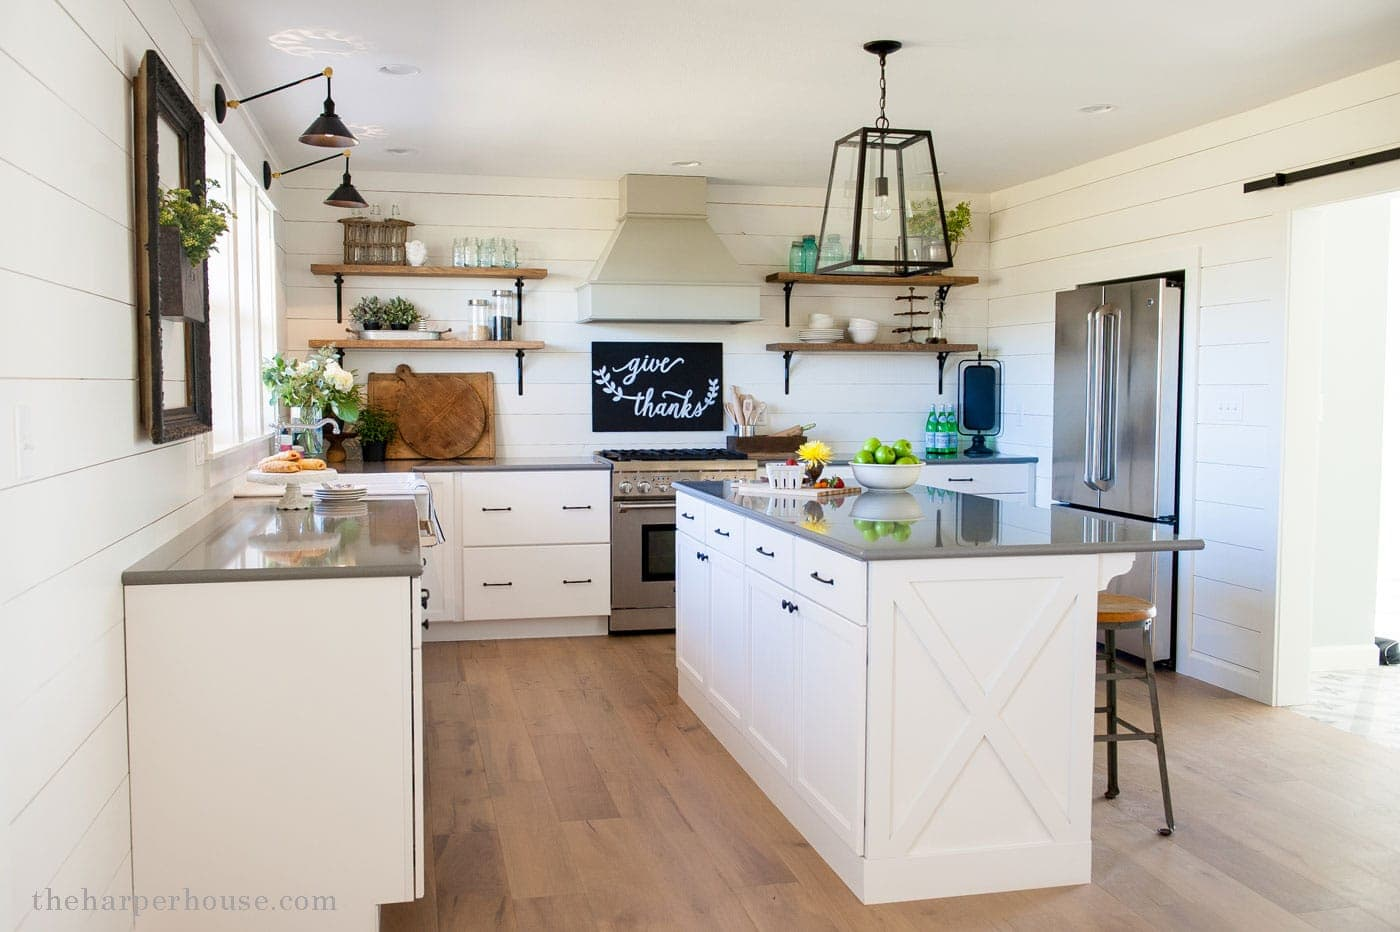 sharing our fixer upper farmhouse kitchen reveal featuring white shaker cabinets, white oak floors, farmhouse sink, open shelves, industrial lighting, & gray quartz countertops| theharperhouse.com